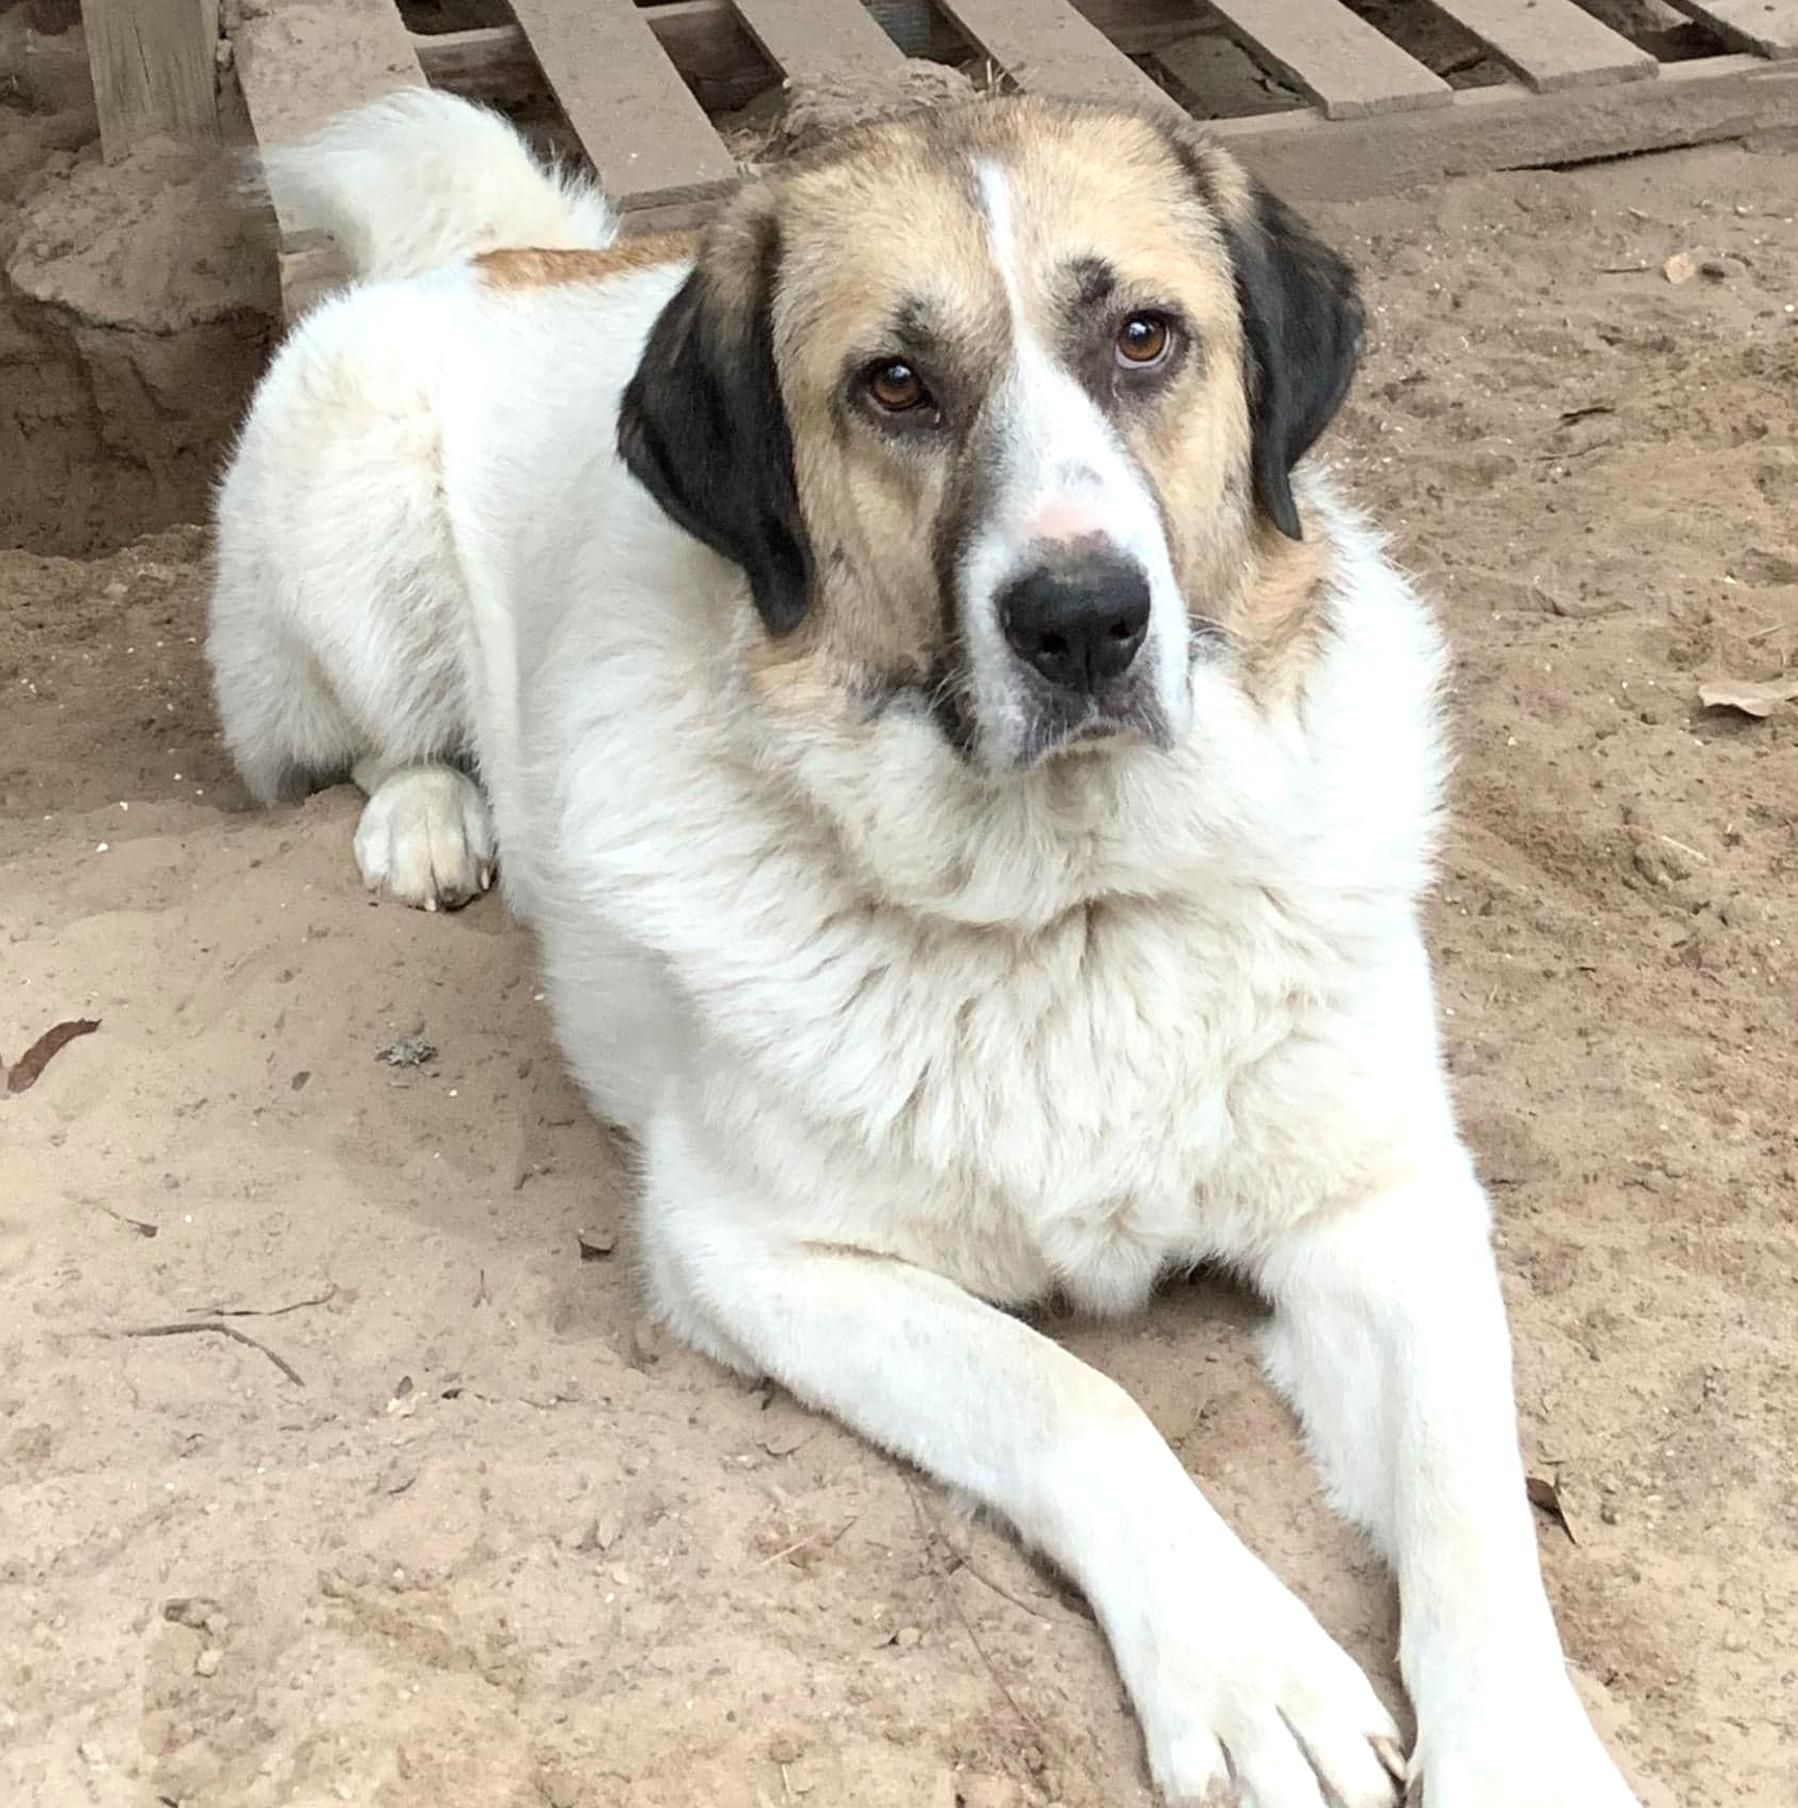 Texas Huntsville Needs Adoption Allie Is An Adoptable Anatolian Shepherd Searching For A F In 2020 Anatolian Shepherd Dog Anatolian Shepherd Puppies Anatolian Shepherd